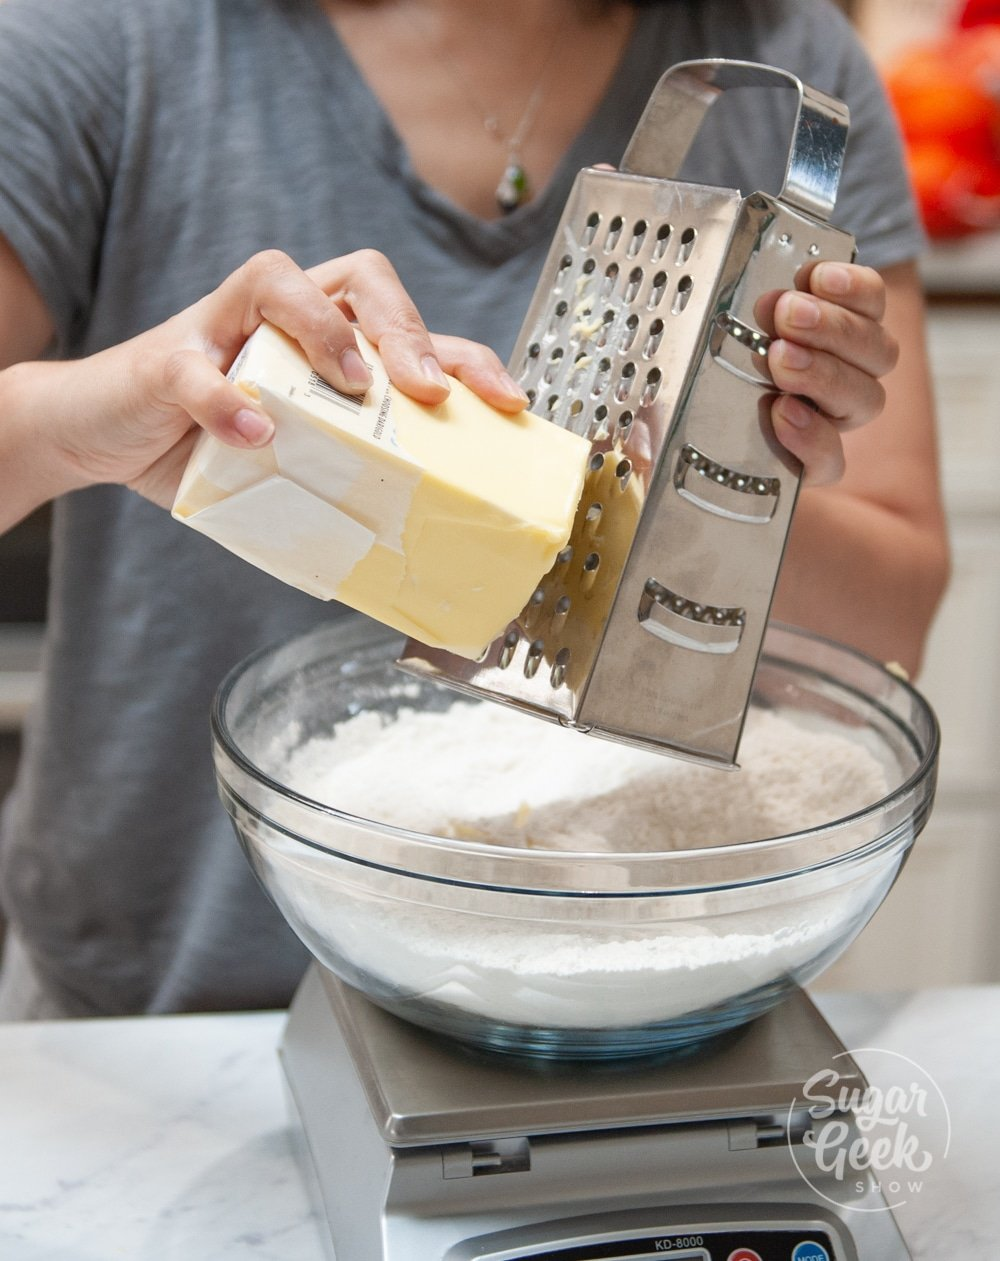 shredding cold butter into dry ingredients on top of a scale